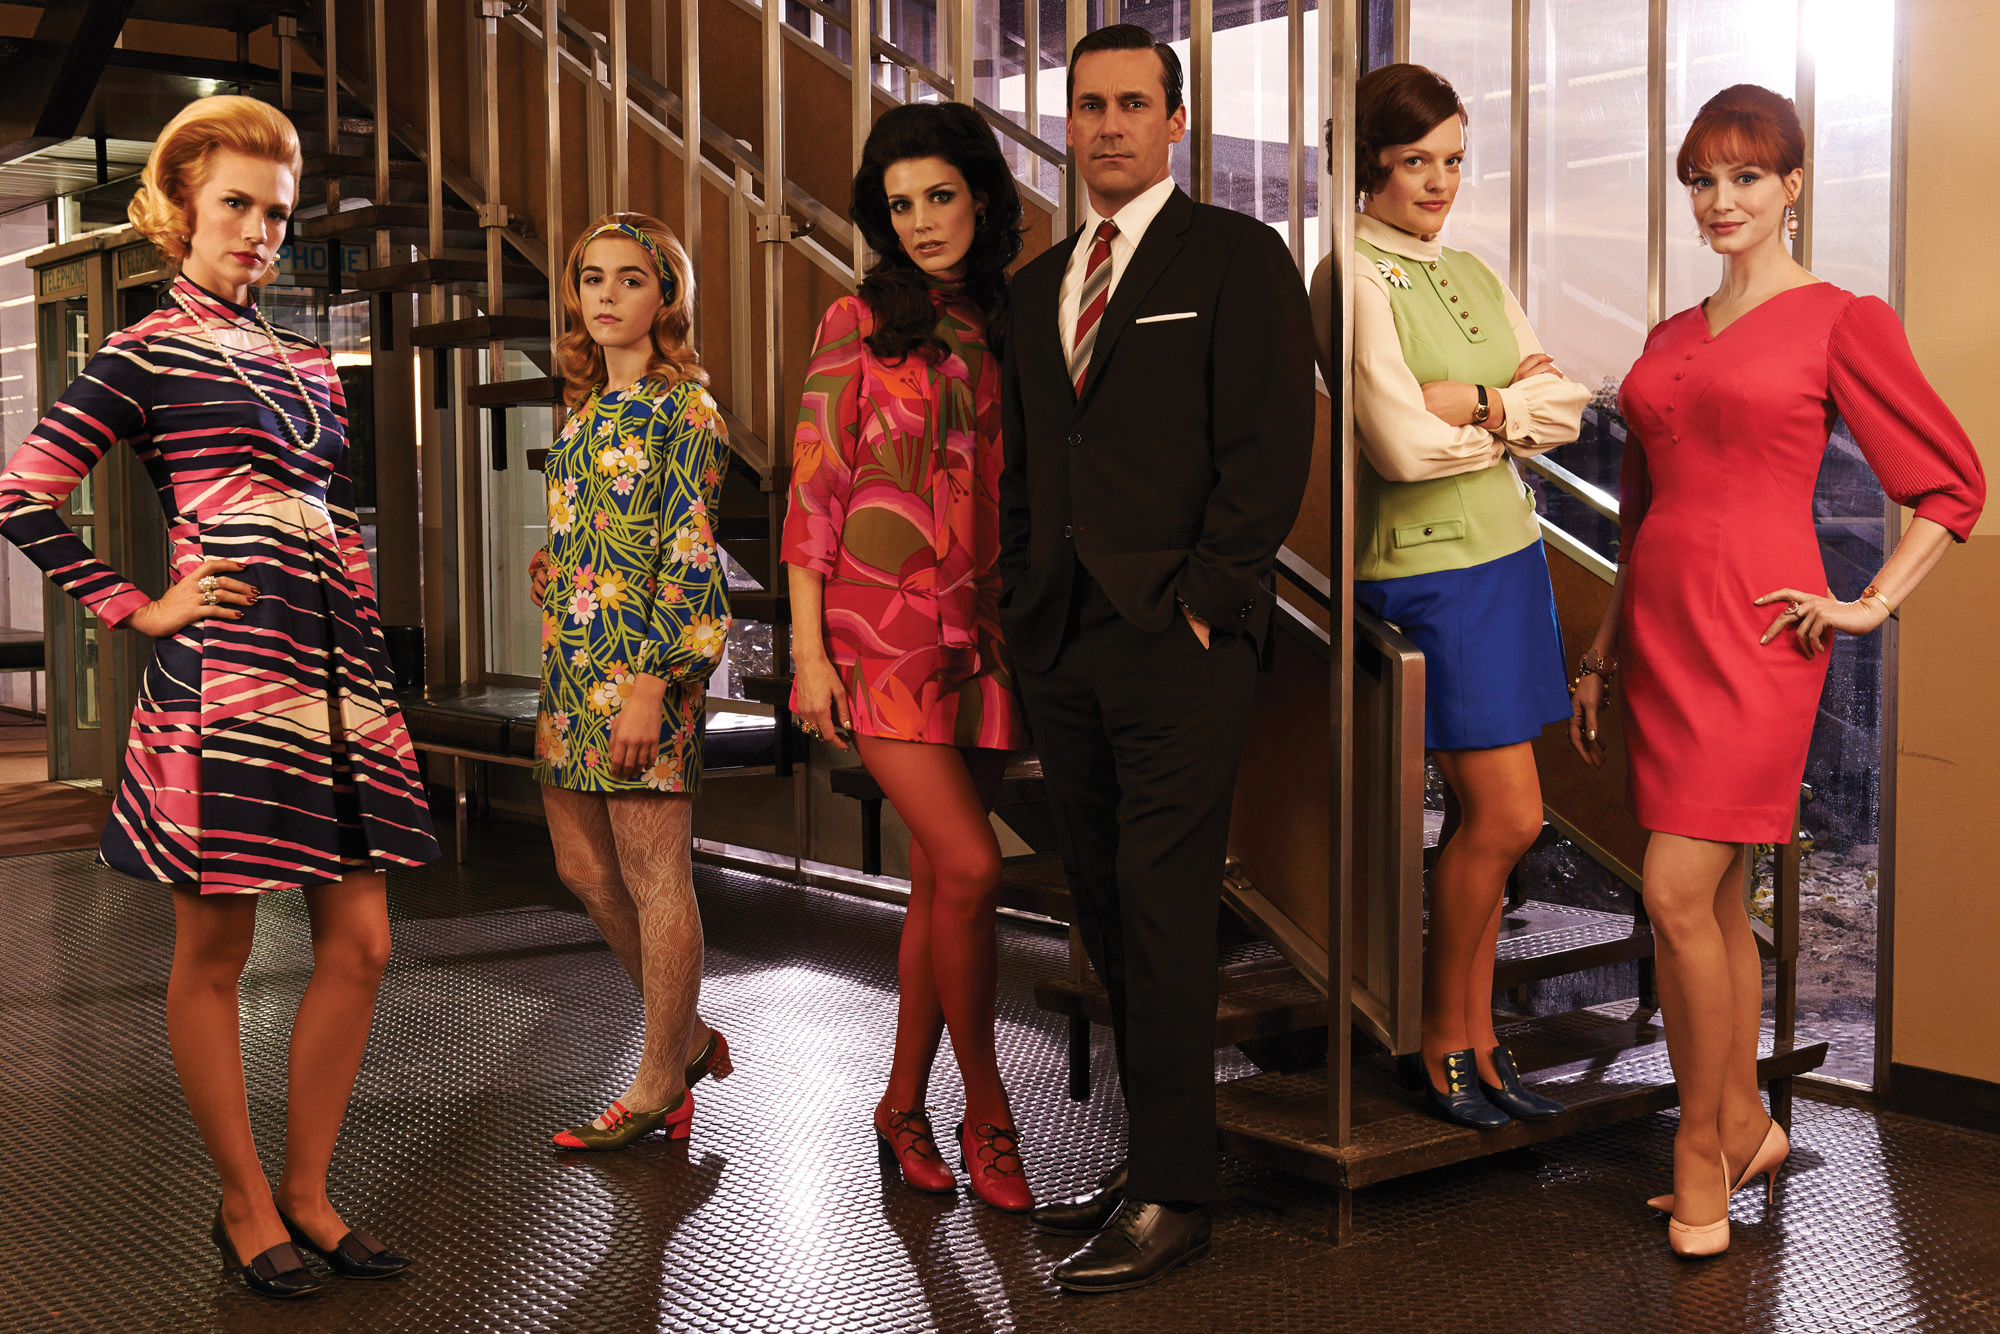 Mad Men enters its final season. (Photo provided by AMCnetworks.com)